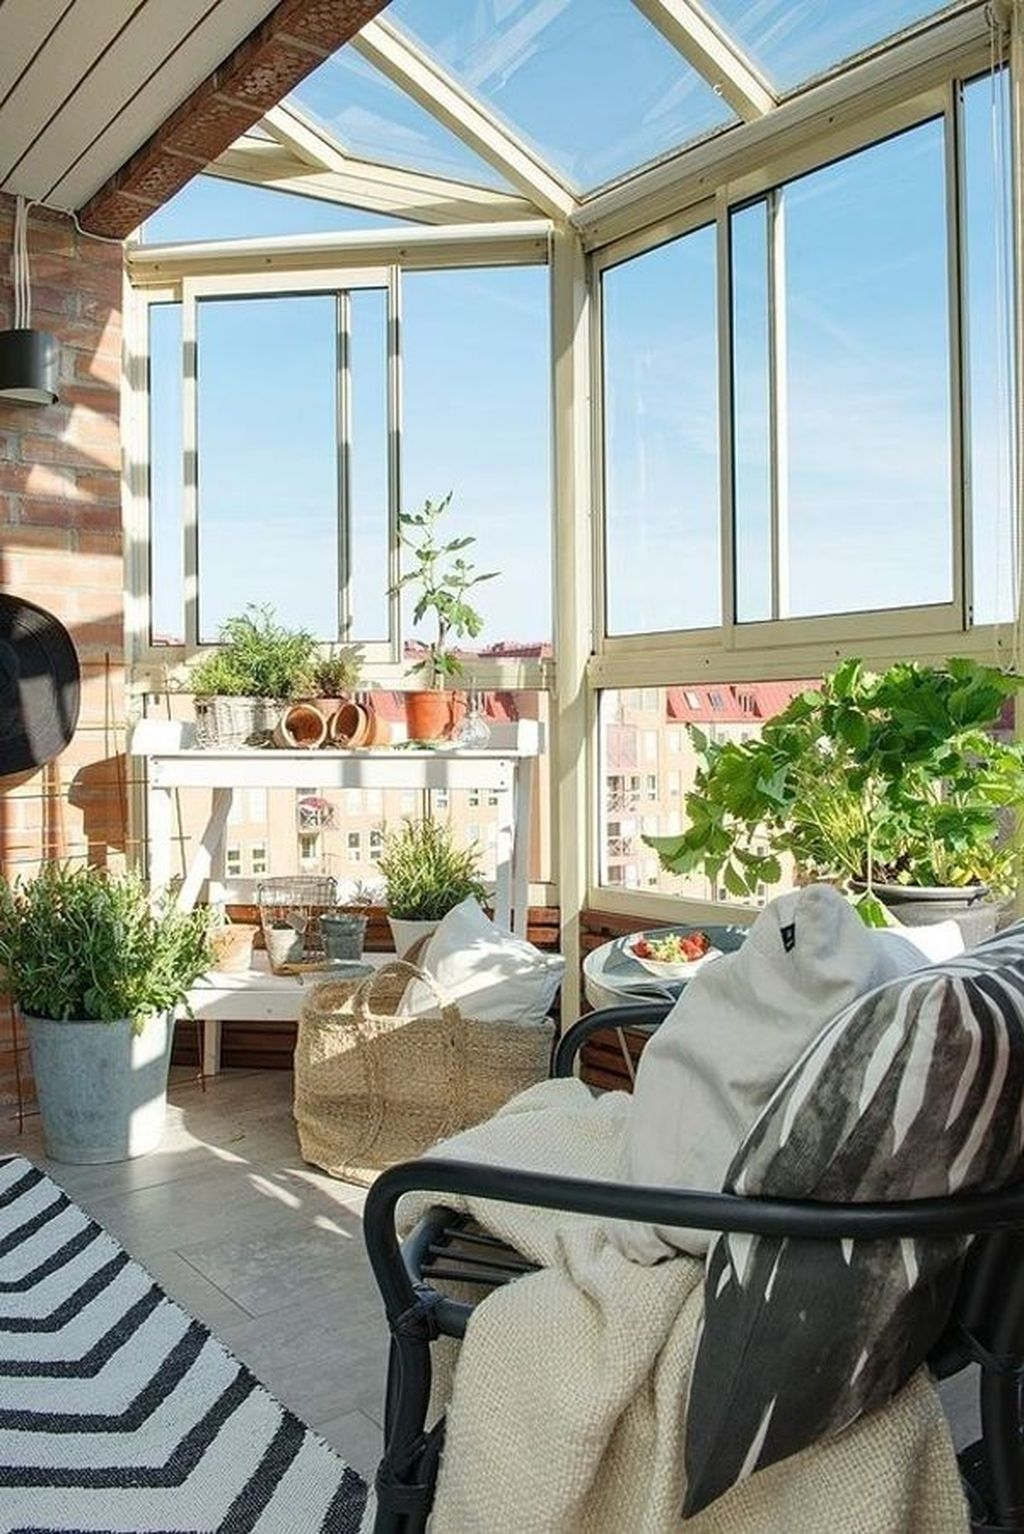 Brilliant Closed Balcony Design Ideas To Enjoy In All Weather Conditions20